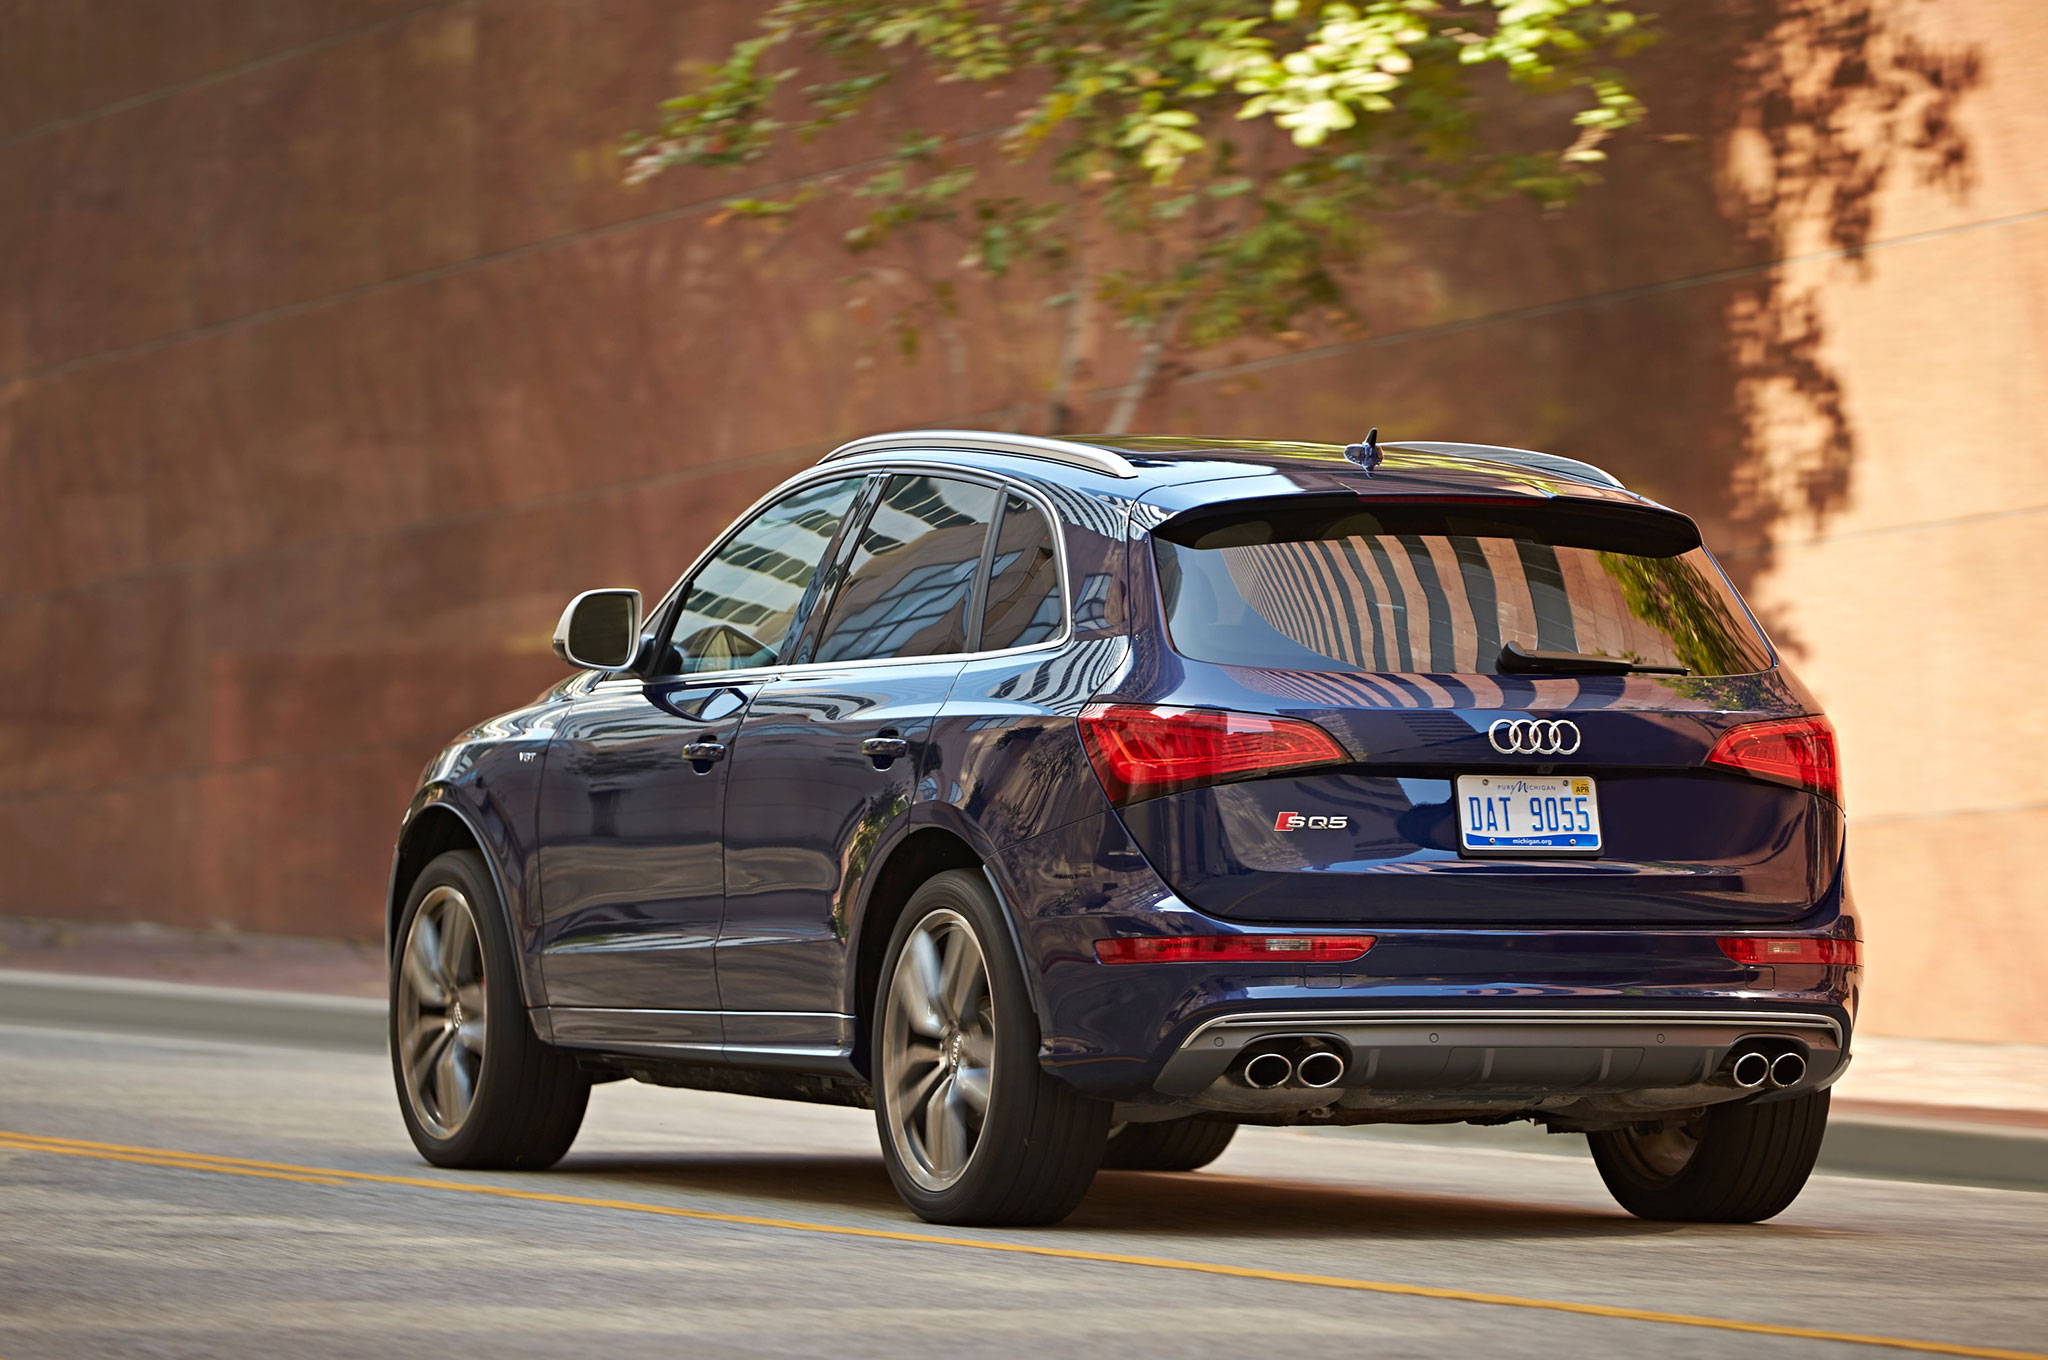 Audi 0 60 >> 2016 Audi SQ5 Review